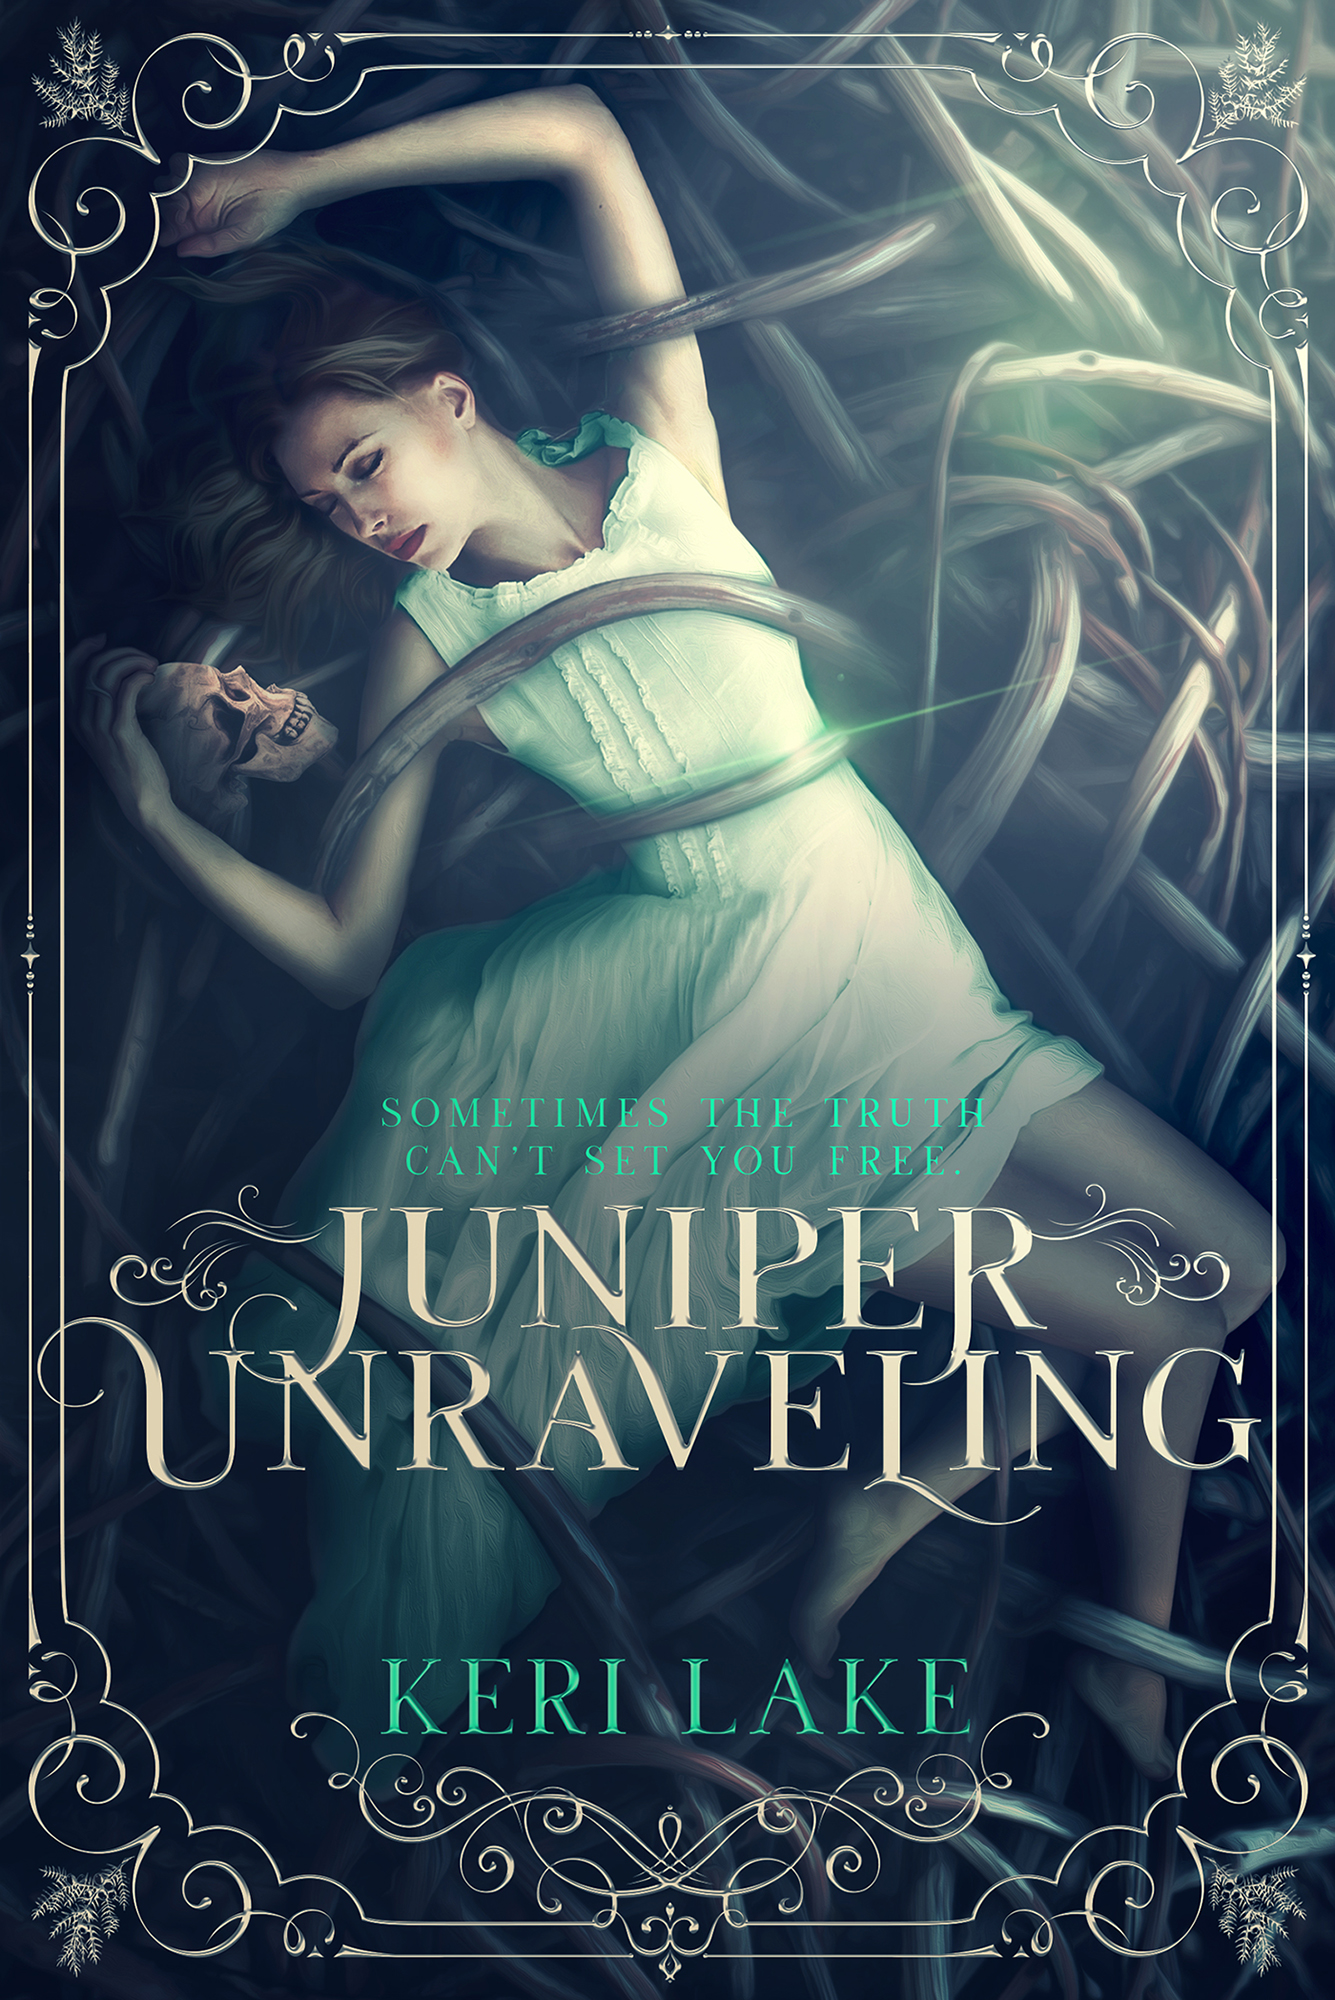 JUNIPER UNRAVELING EBOOK COVER.jpg